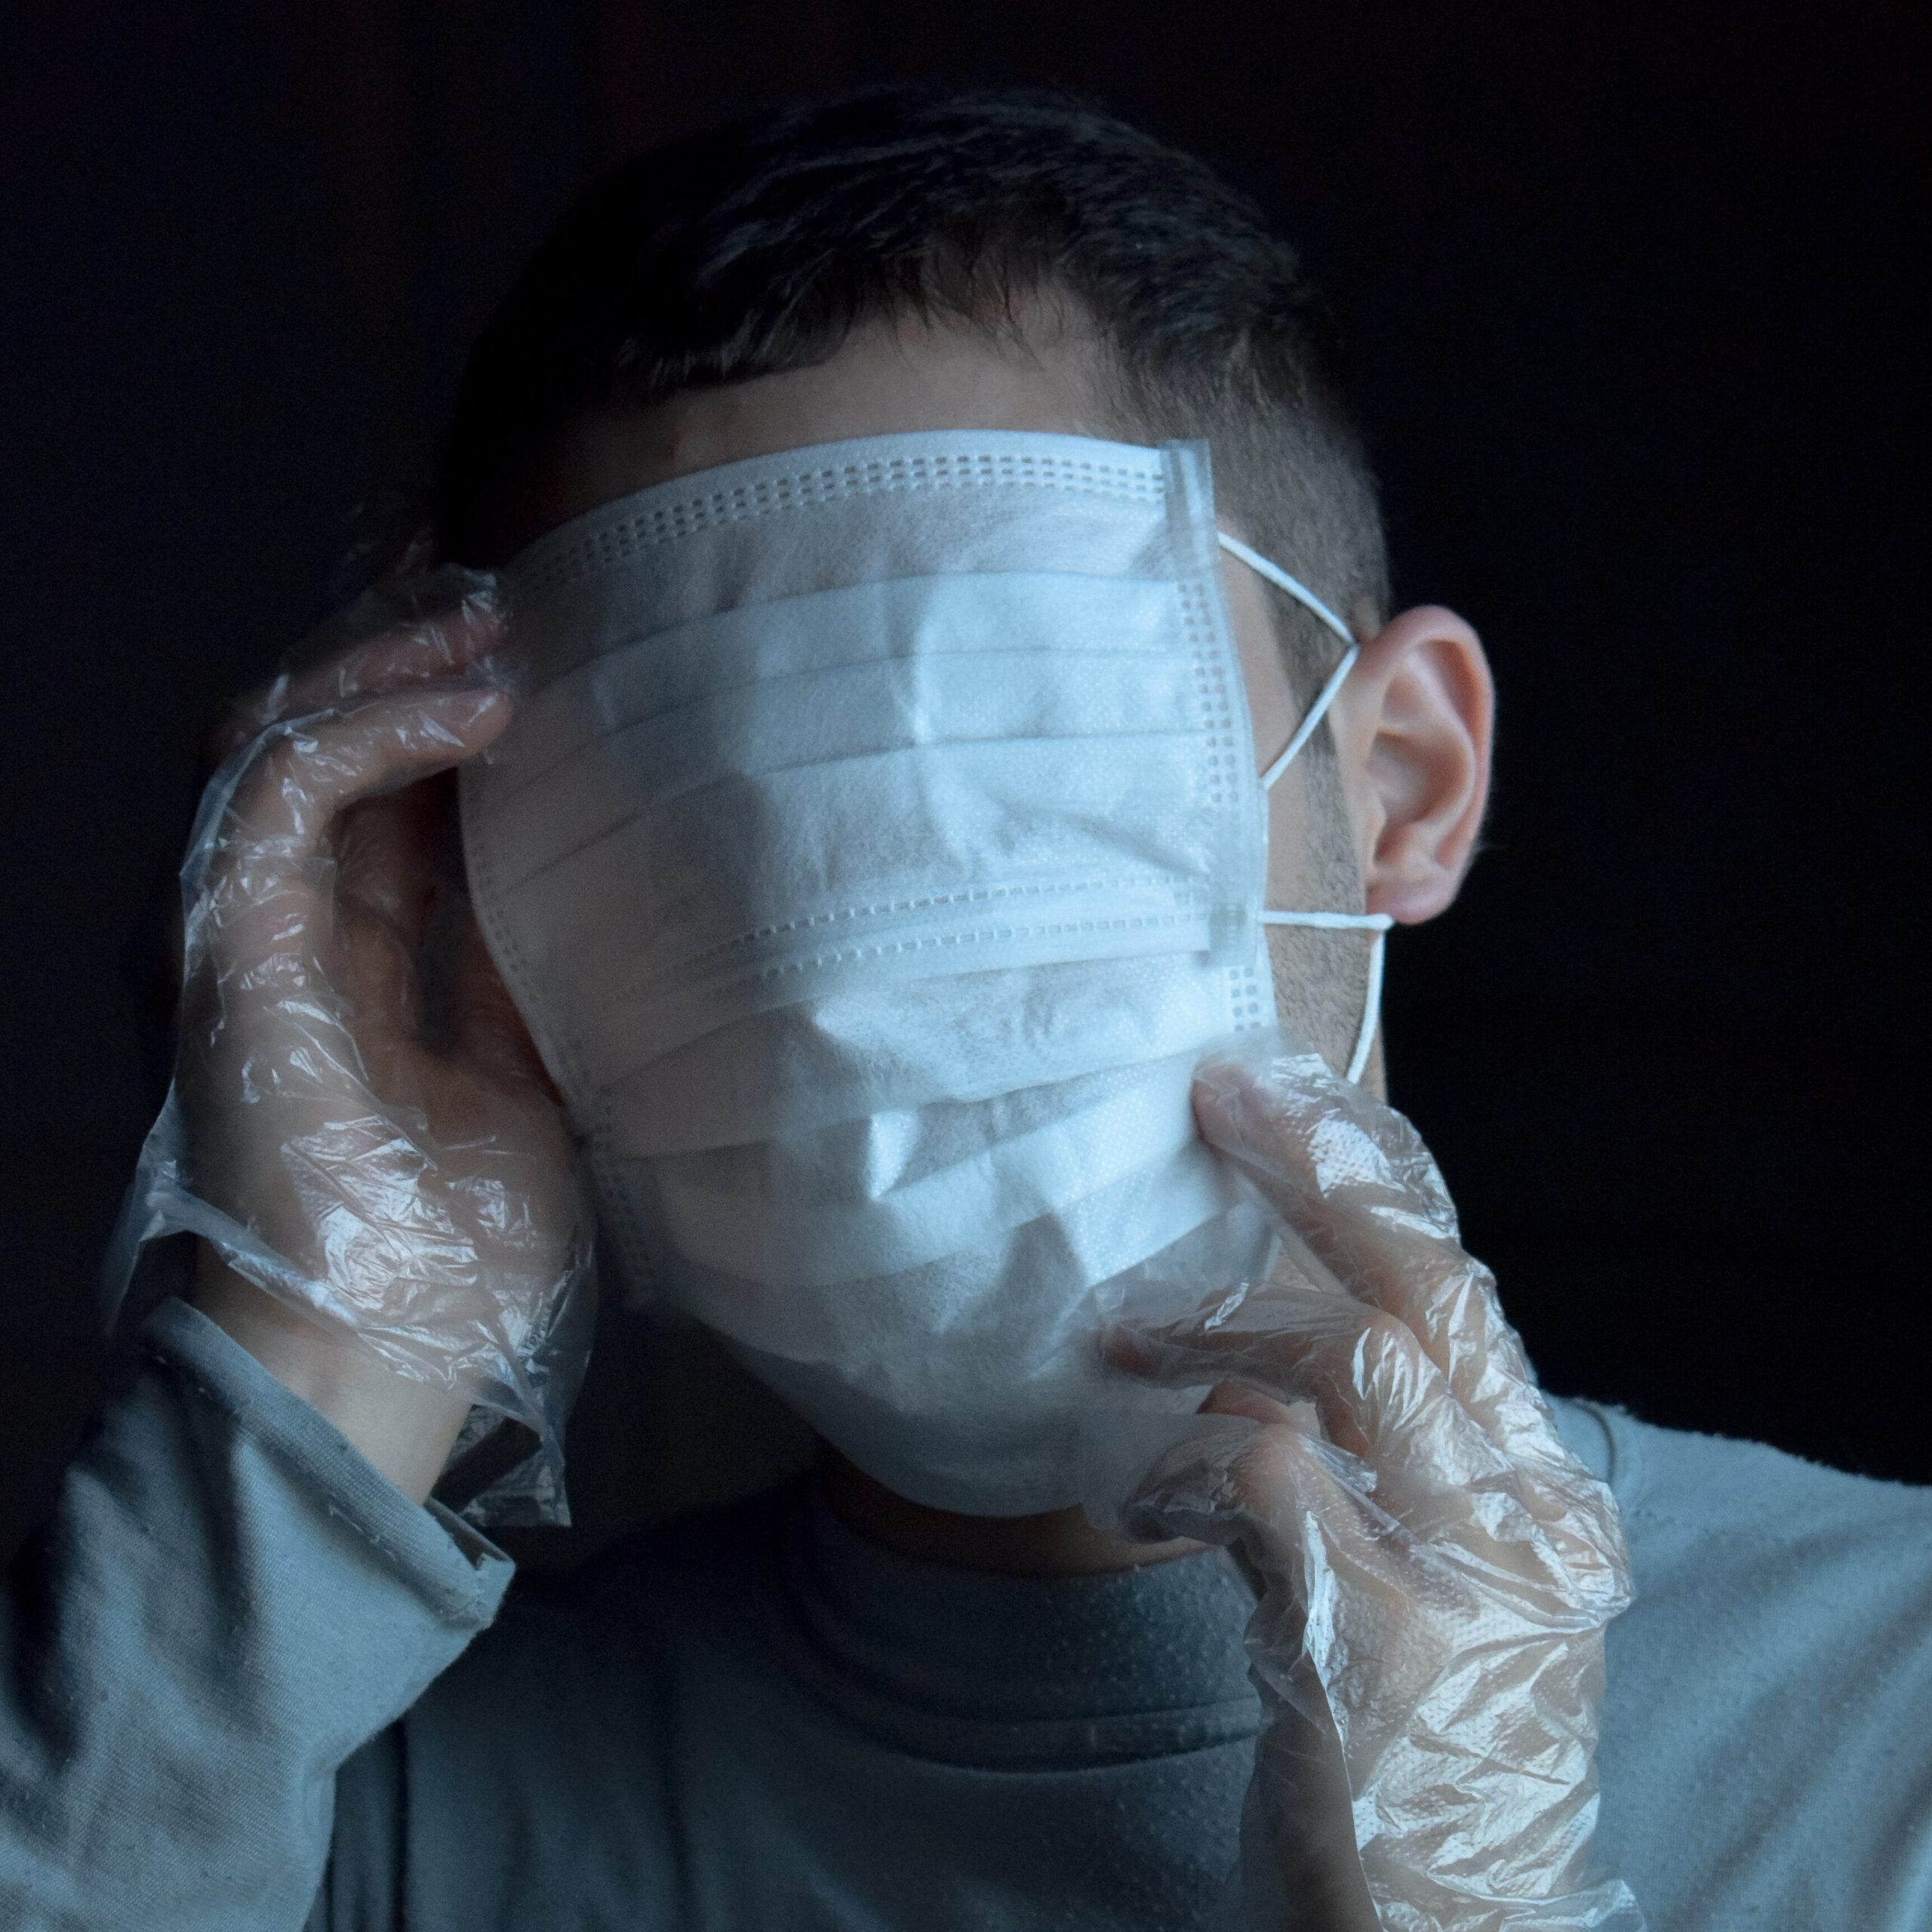 Is It Safe To Hire House Cleaners During COVID-19 Pandemic?